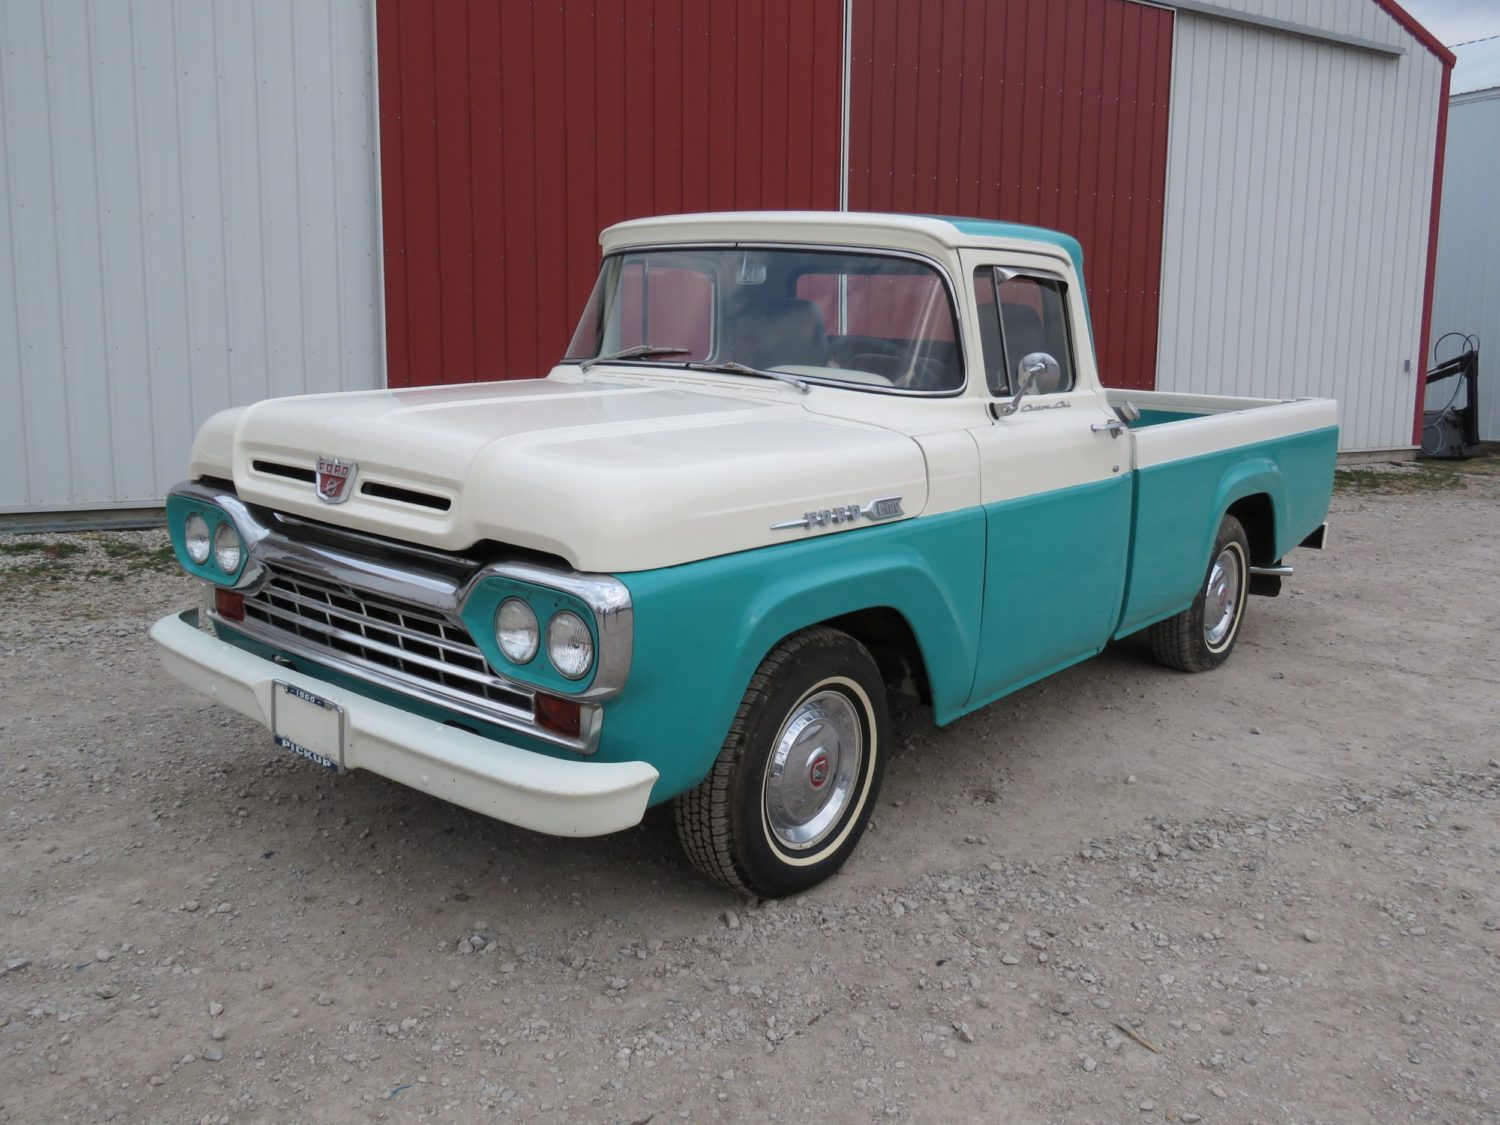 The Rush Collection - Ford Collector Vehicles & Memorabilia - image 10